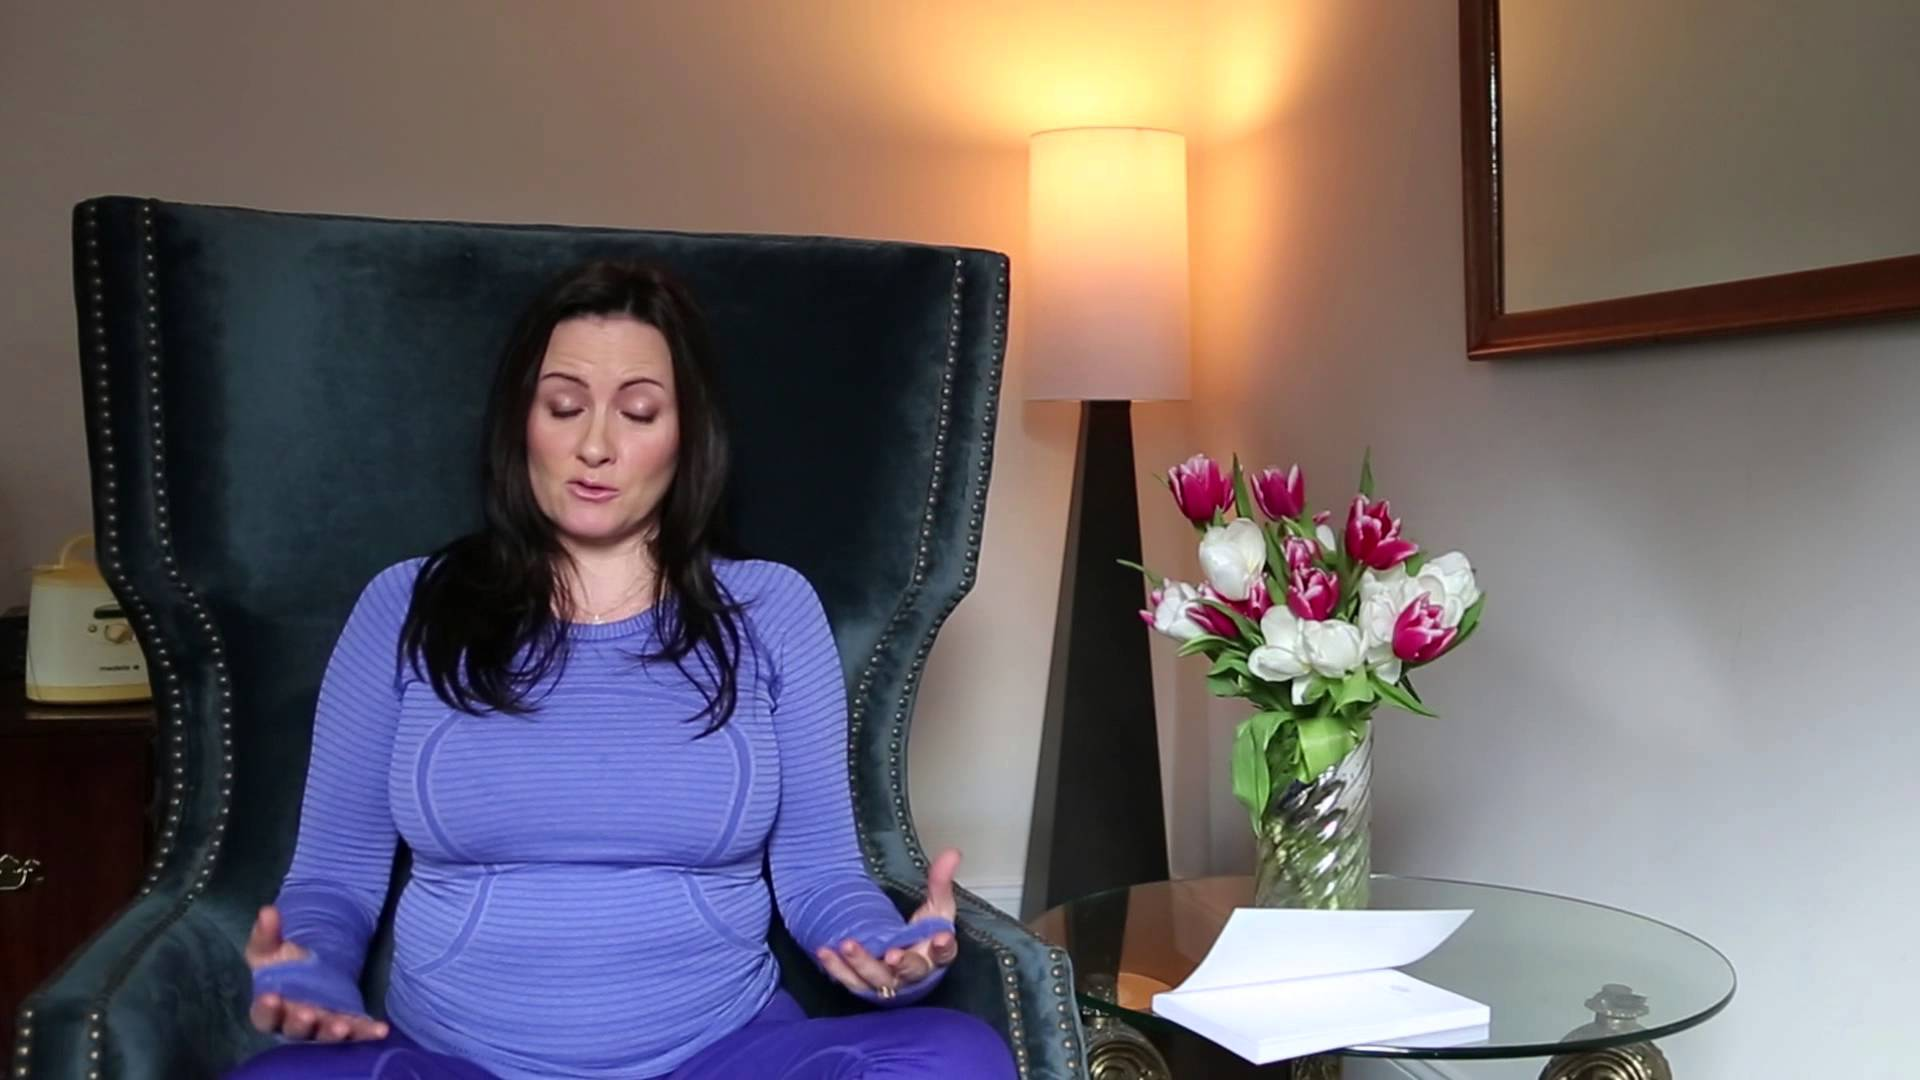 Image of Aimee Raupp Meditating on a chair